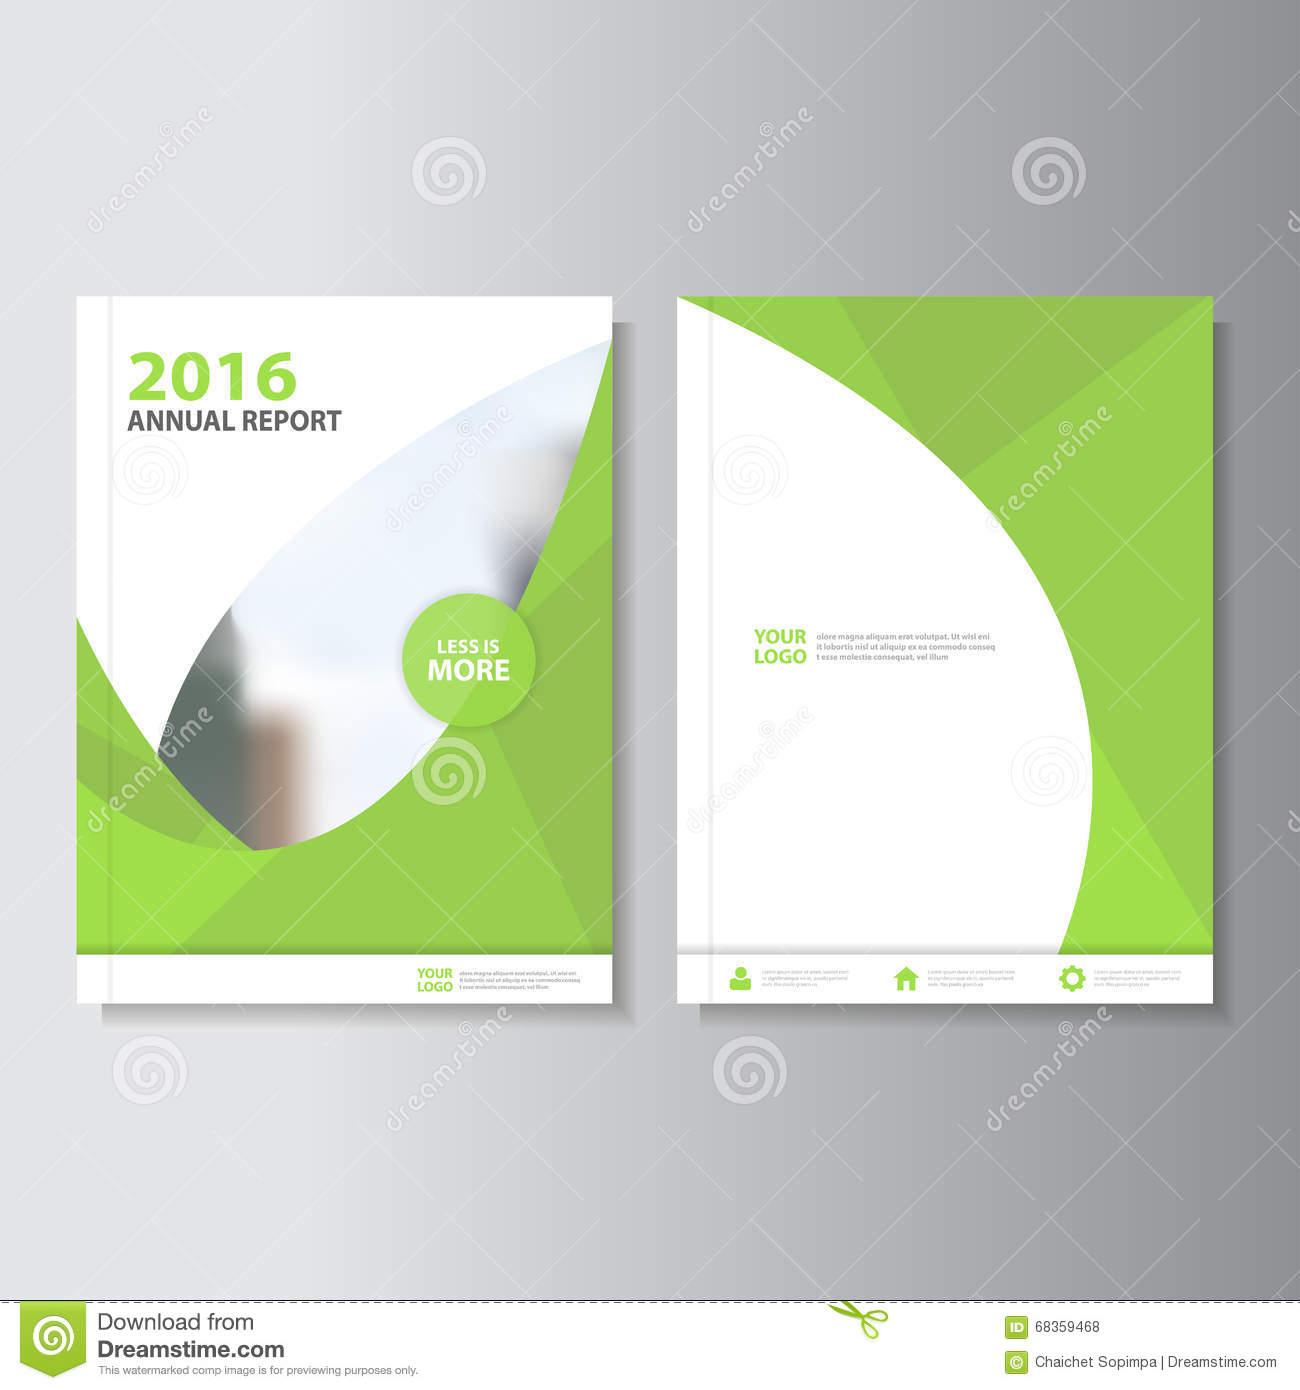 design a book jacket template - vector flyer templates set vector illustration